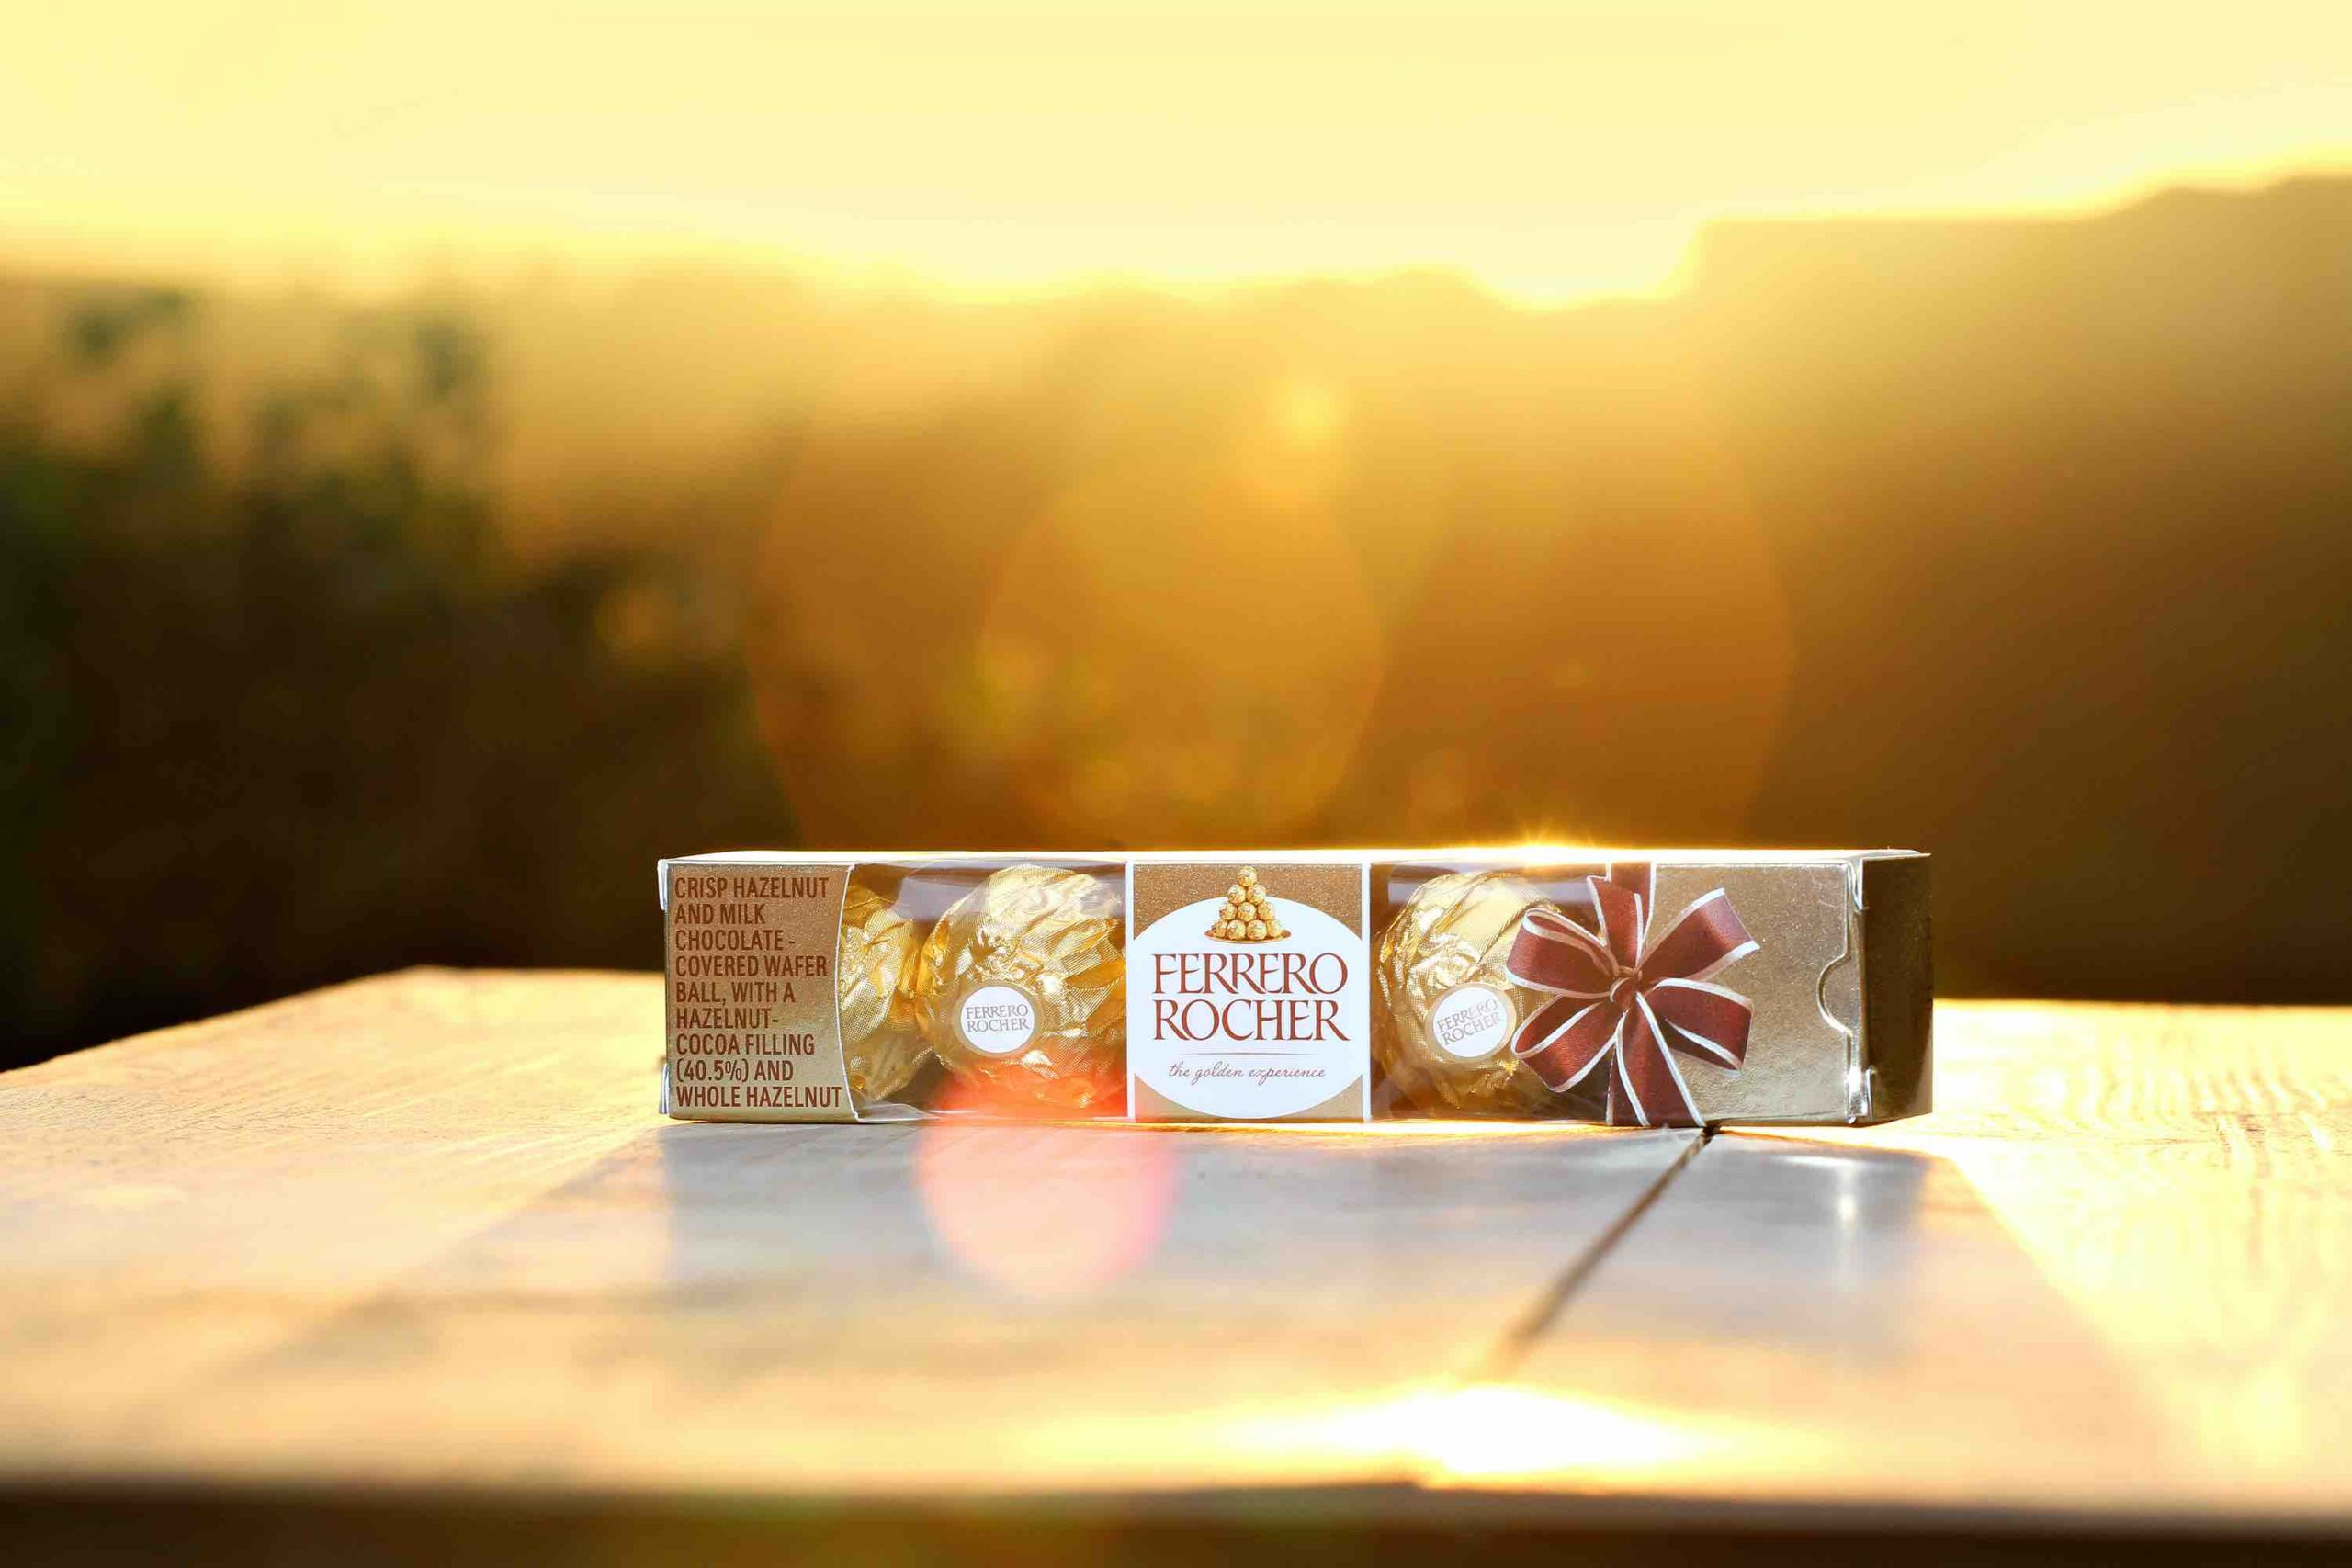 Ferrero's Francesco Tramontin named as a World Confectionery Conference keynote speaker